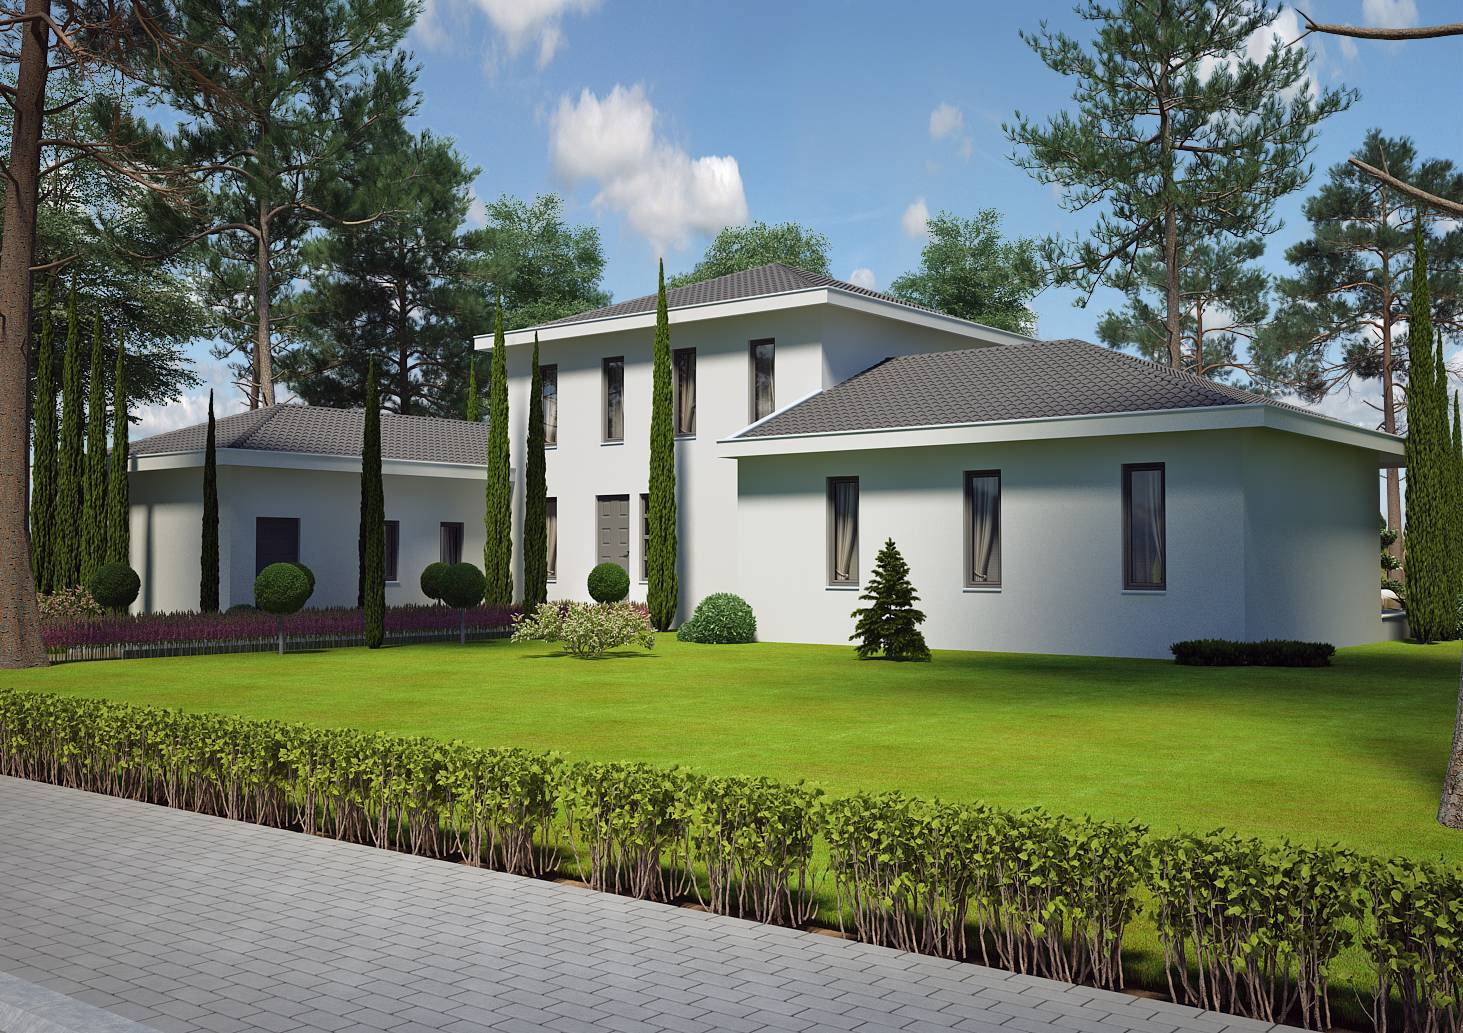 Villa contemporaine 150 m2 etage mod le pinede salon for Prix maison 150 m2 rt 2012